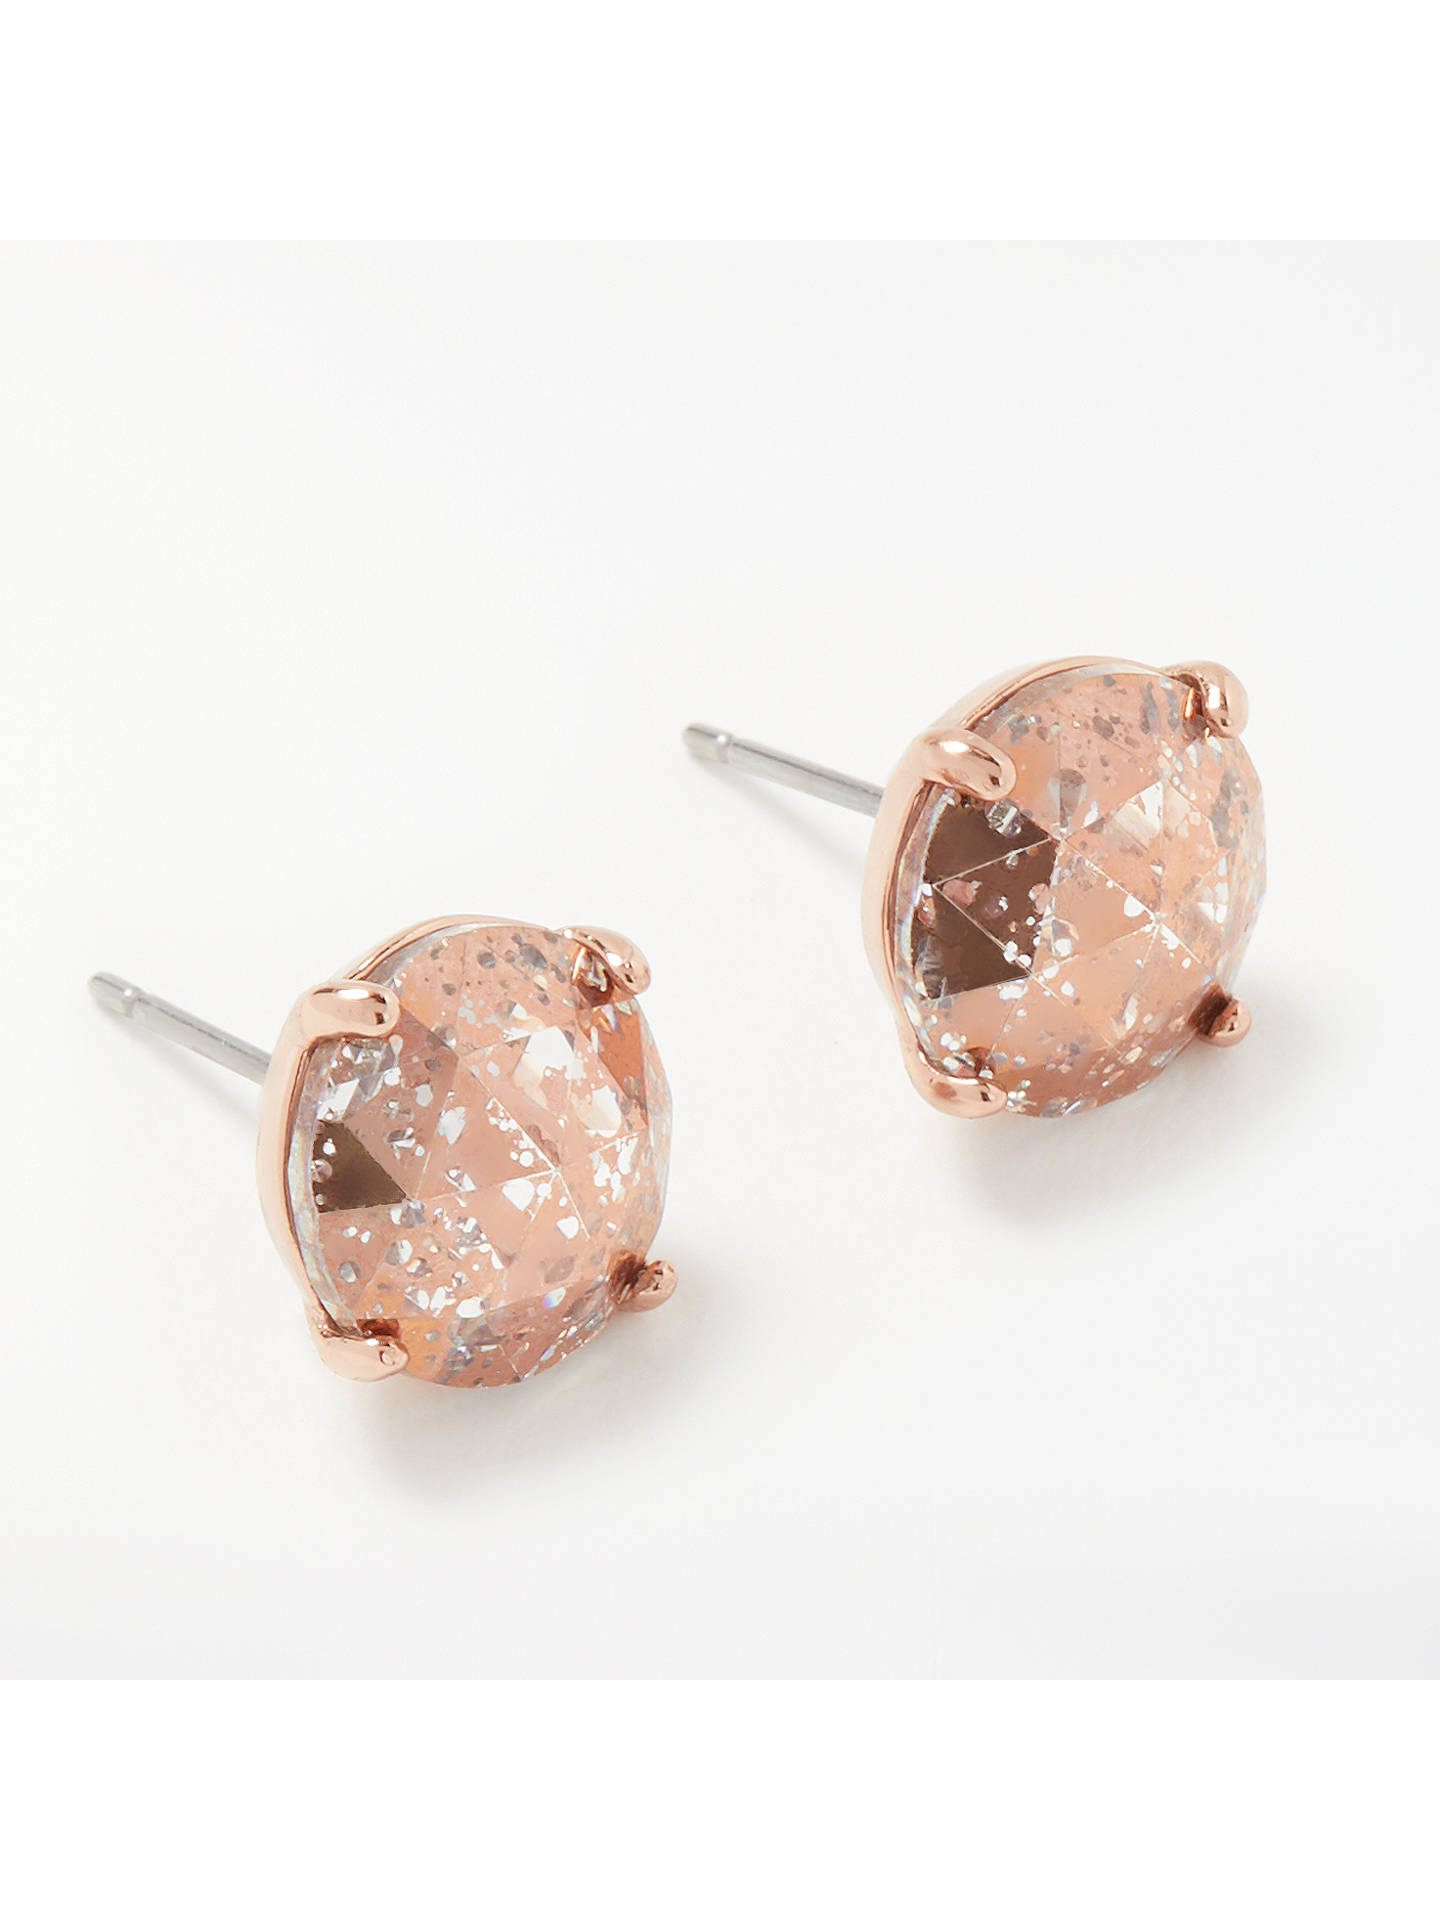 53680034499c4 kate spade new york Round Stud Earrings, Rose Gold/Pink Glitter at ...